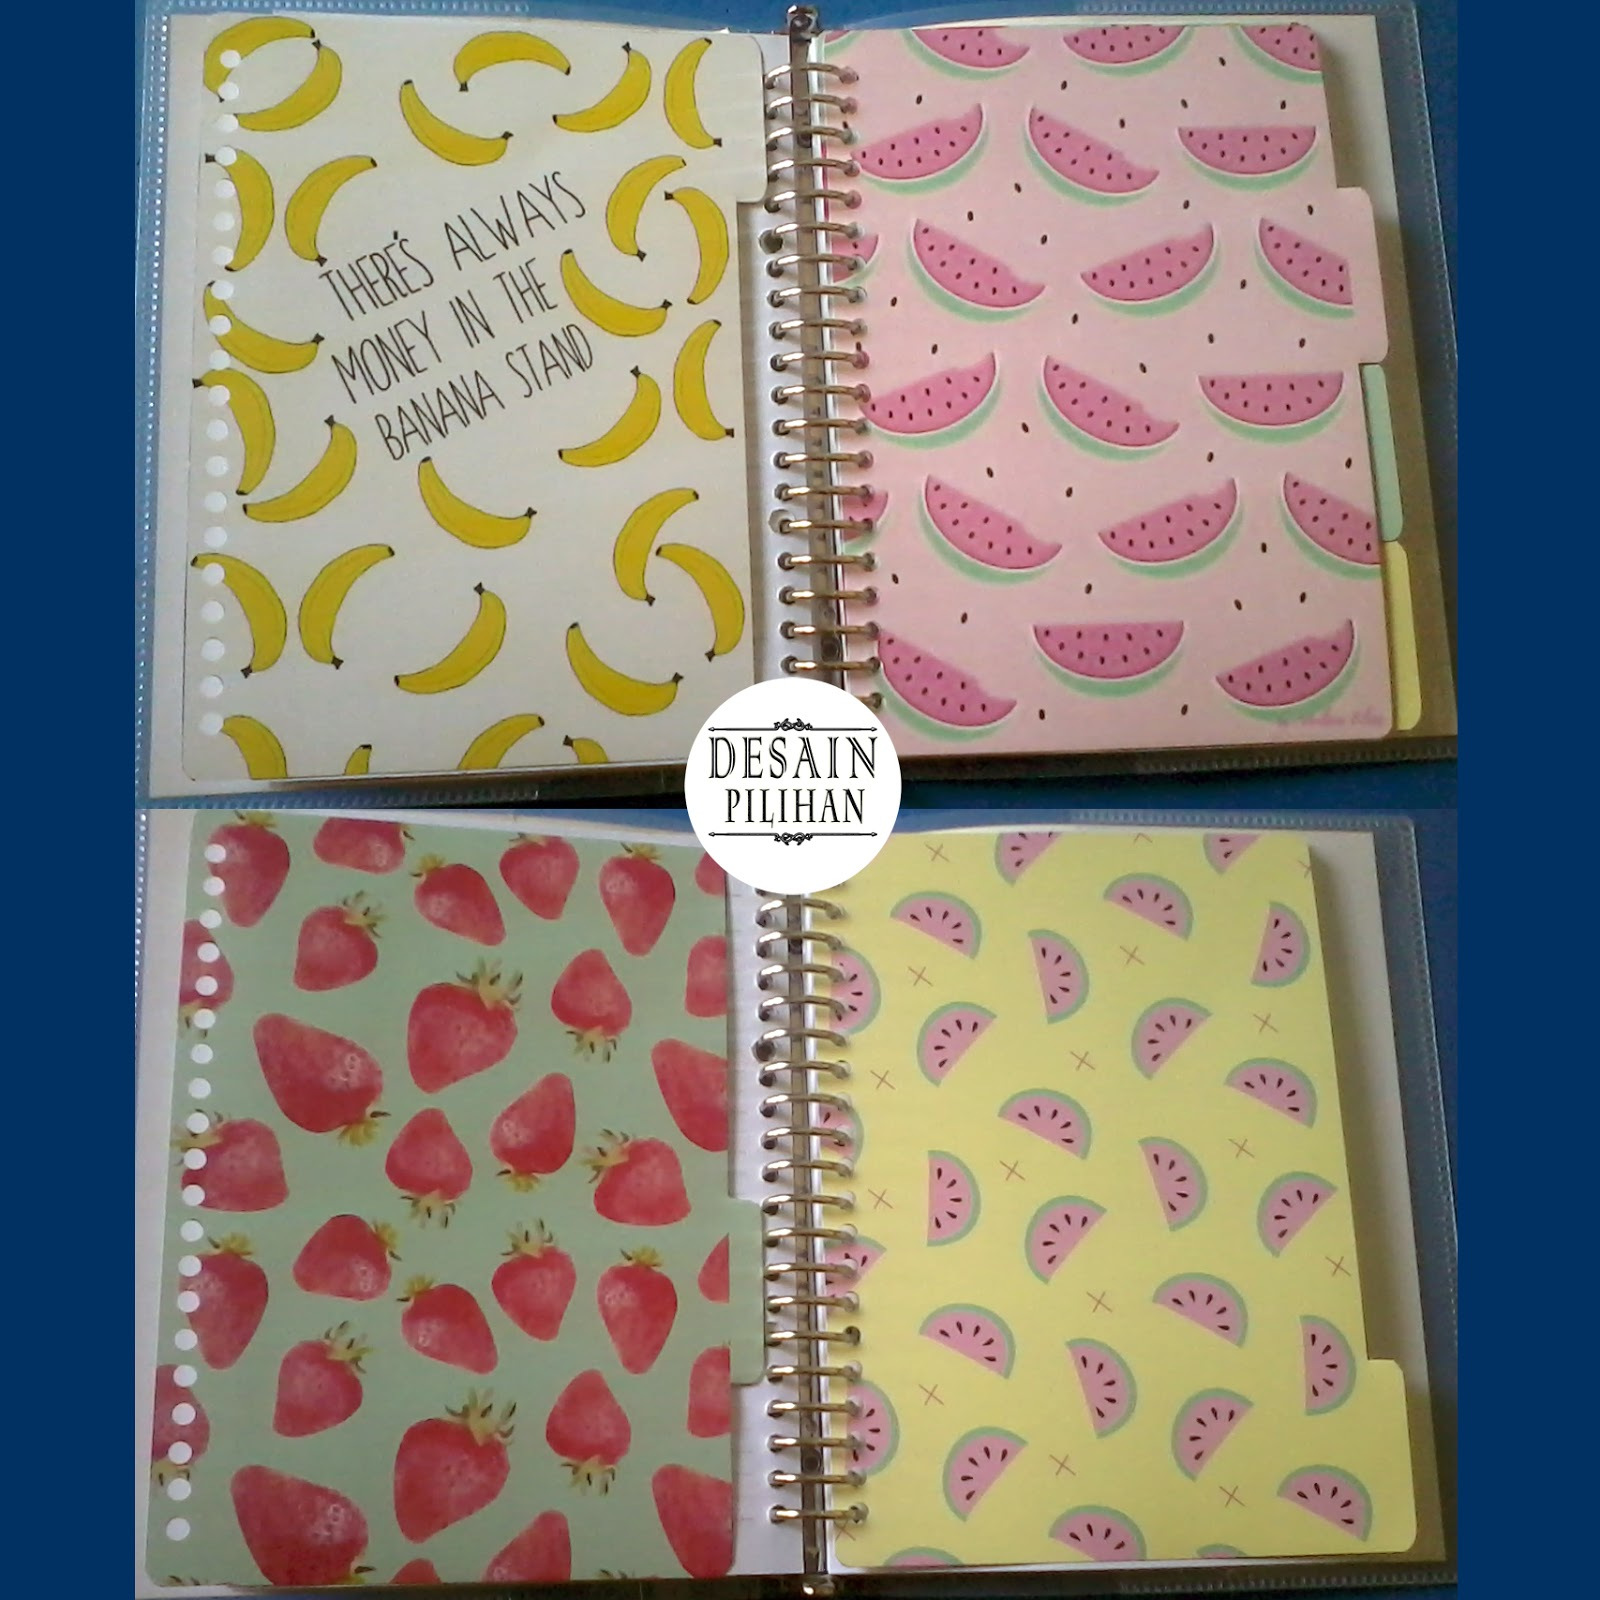 jual pembatas binder custom banana, pembatas binder custom watermelon